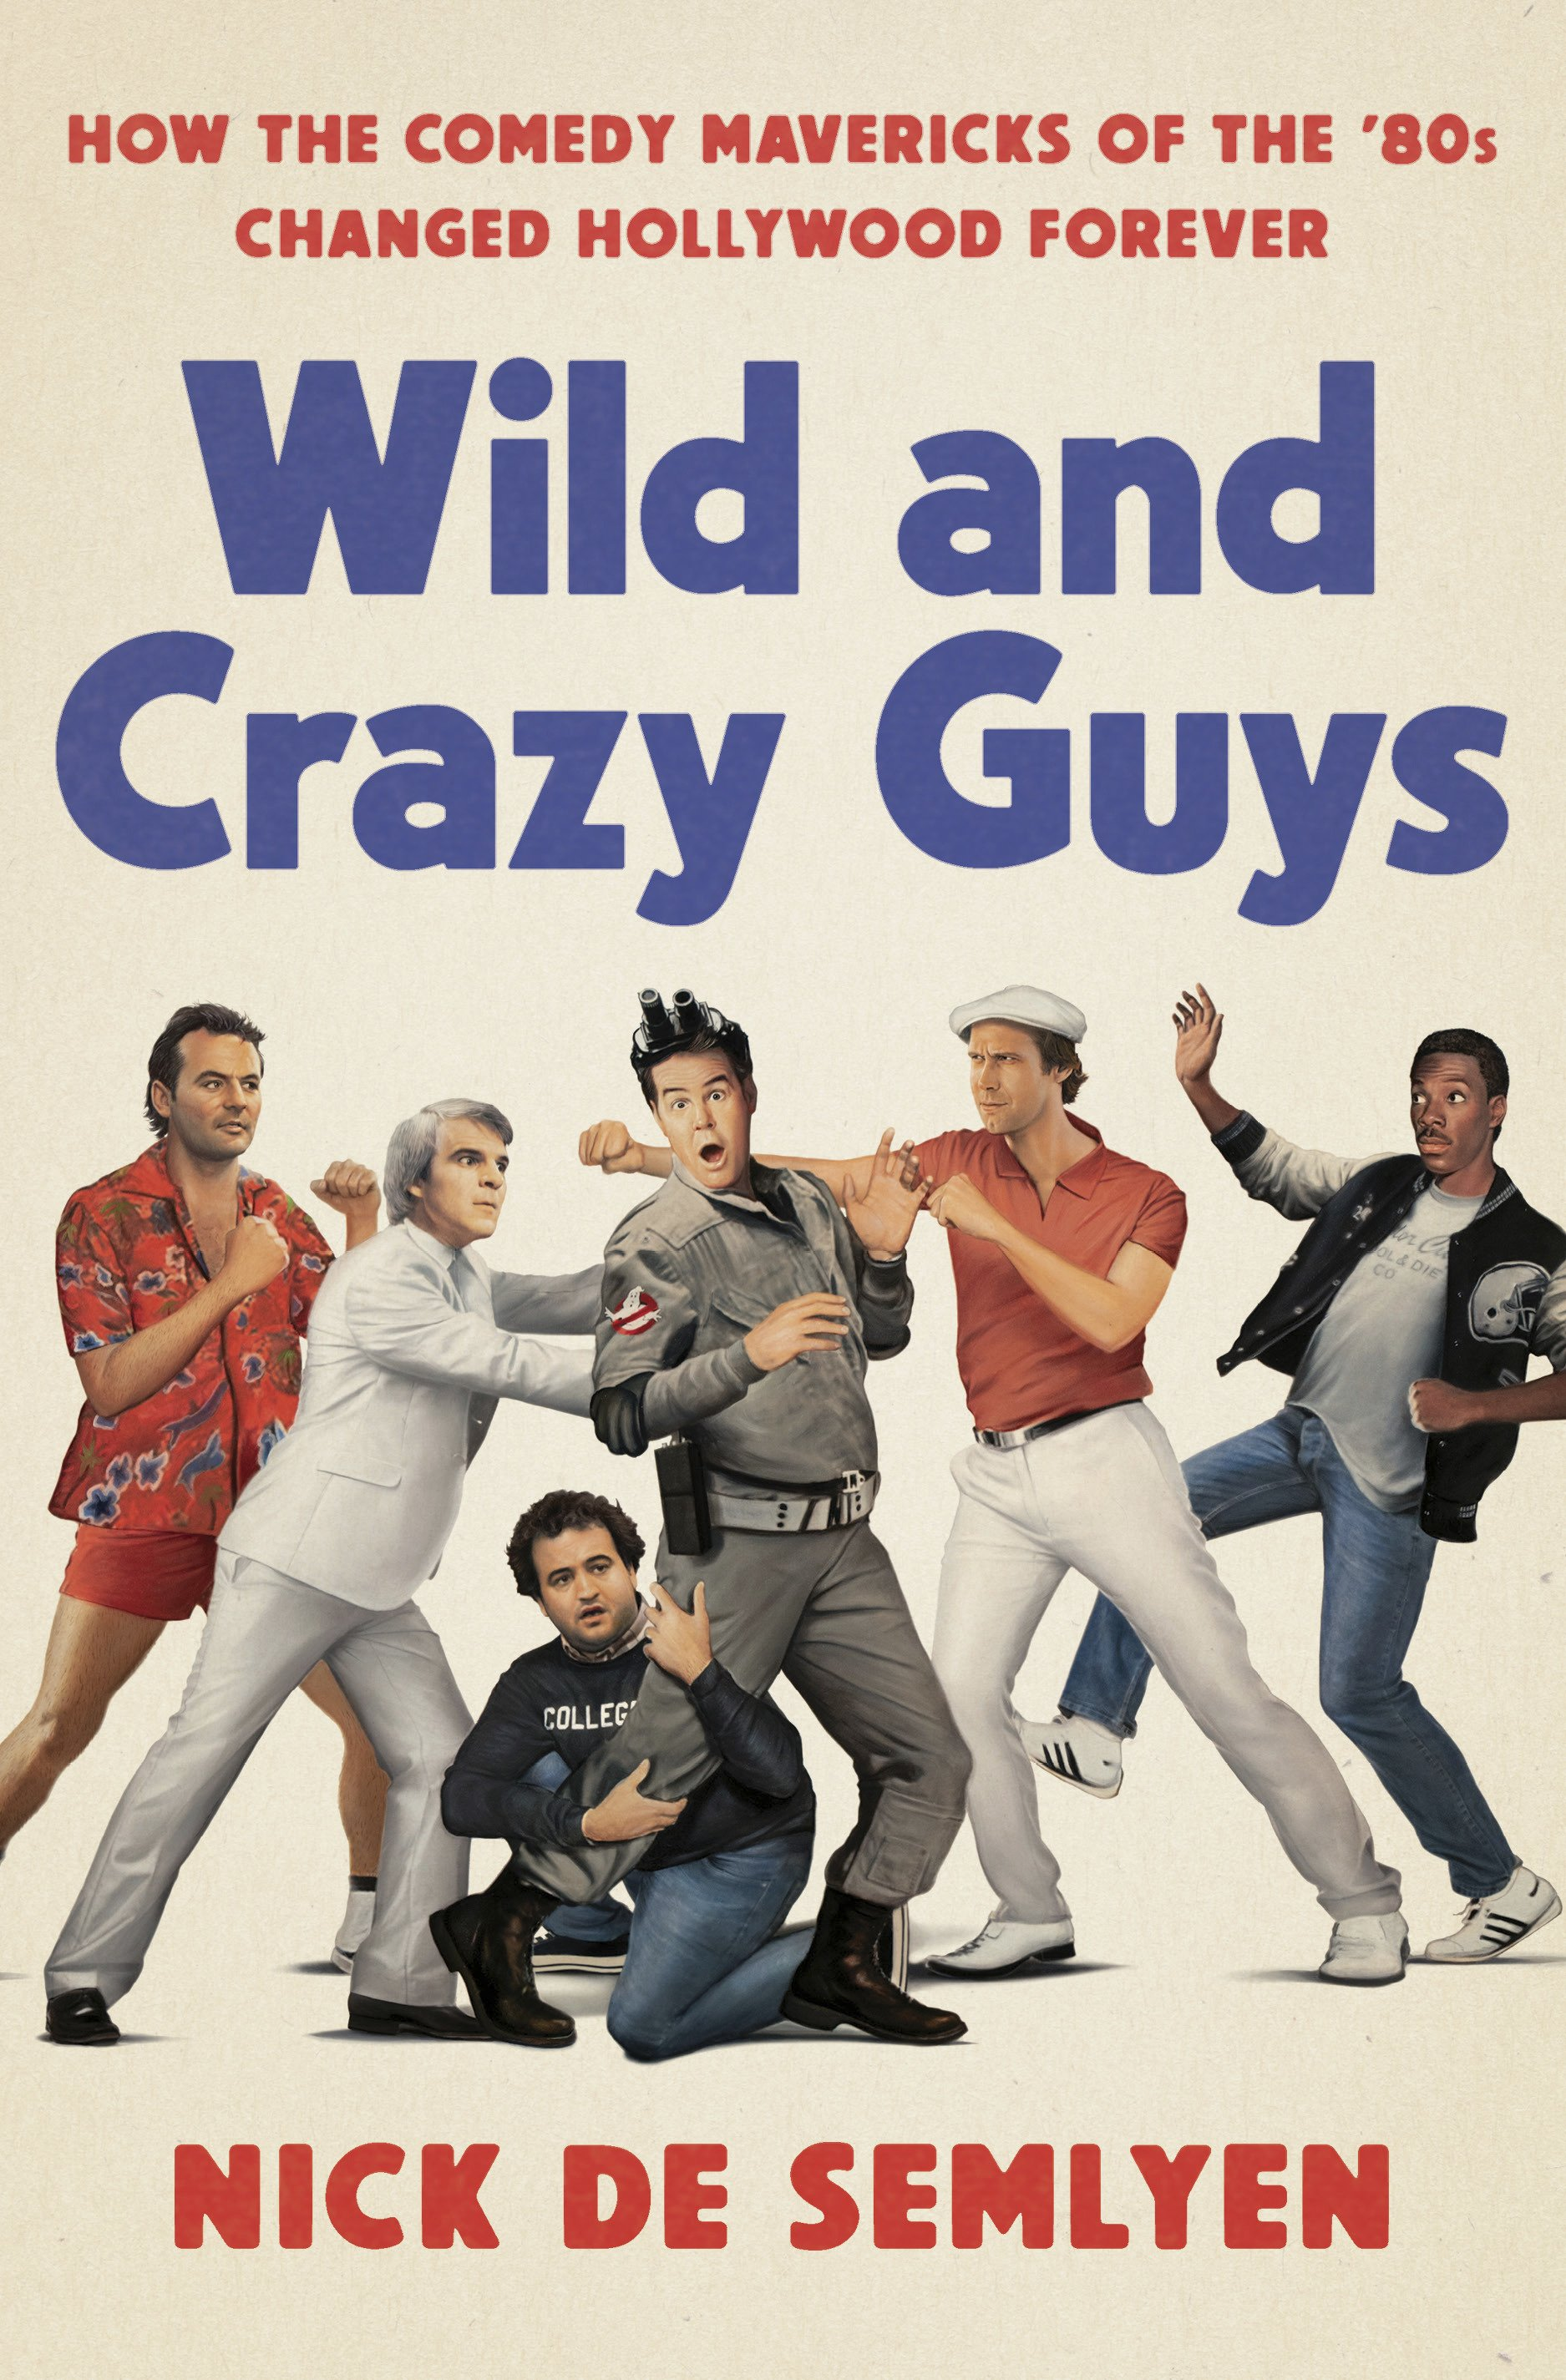 Review: Book 'Wild and Crazy Guys' stars '80s film funnymen